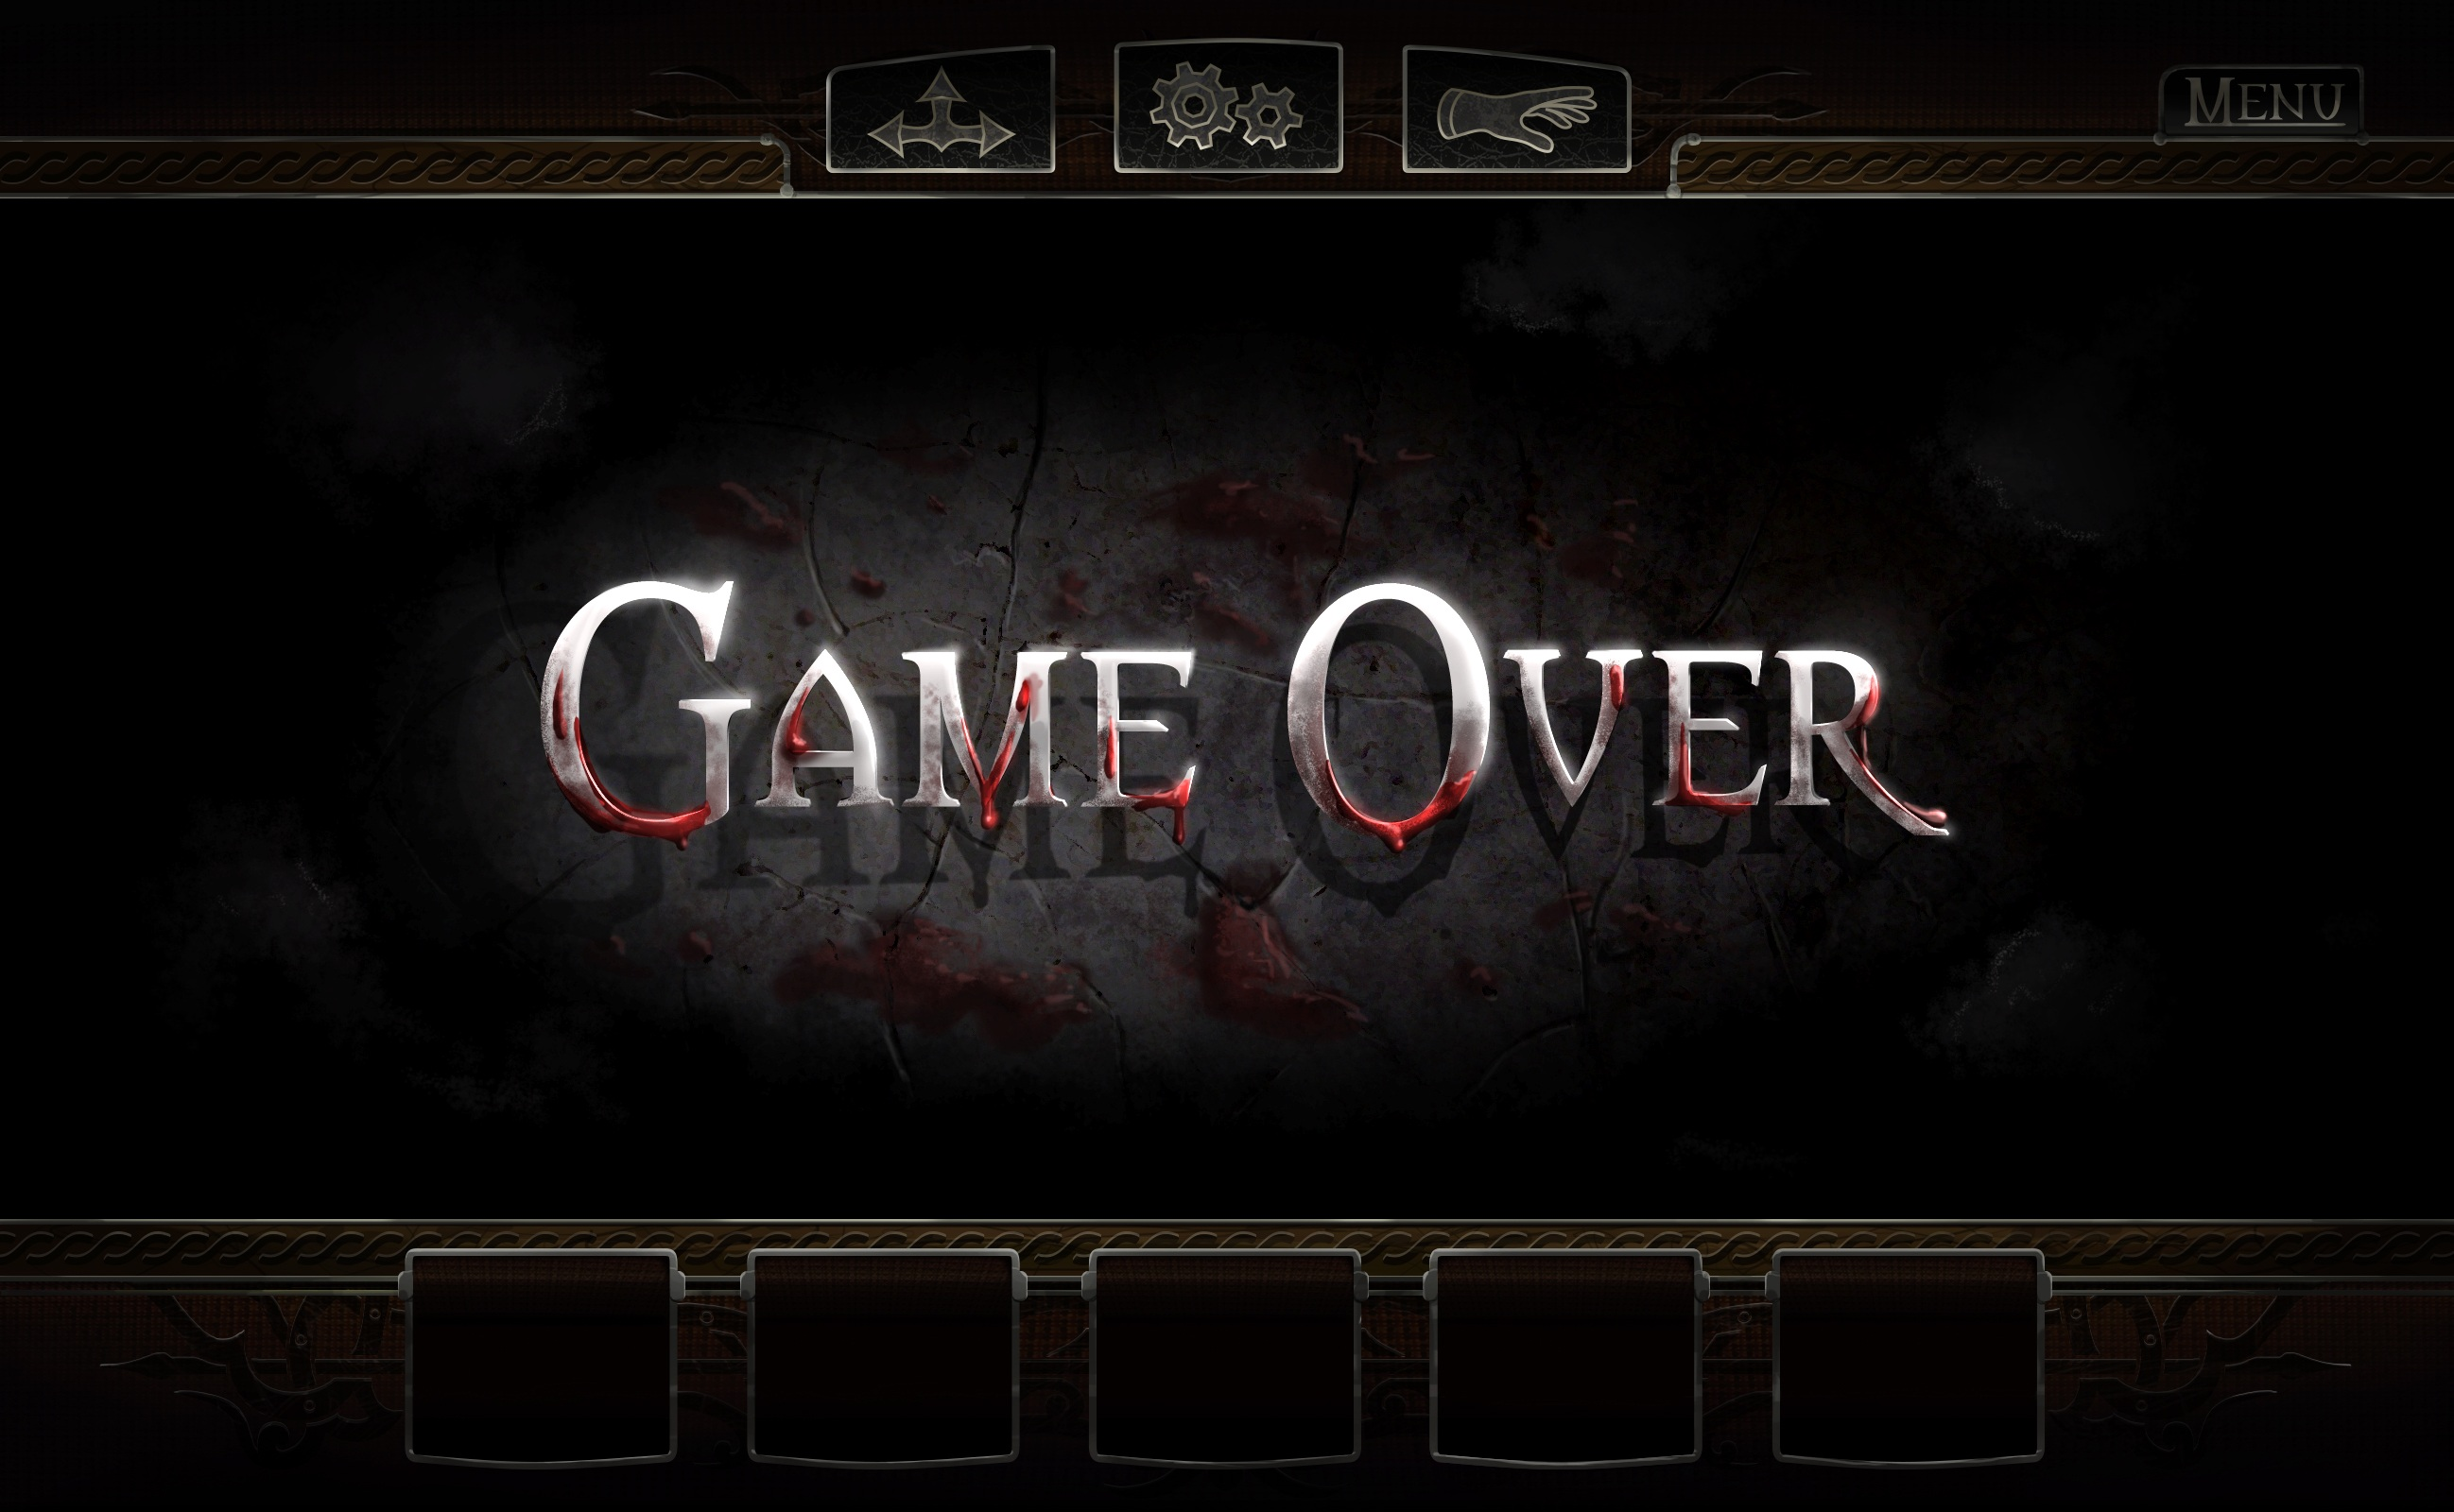 Game over screen image castle dracula indie db